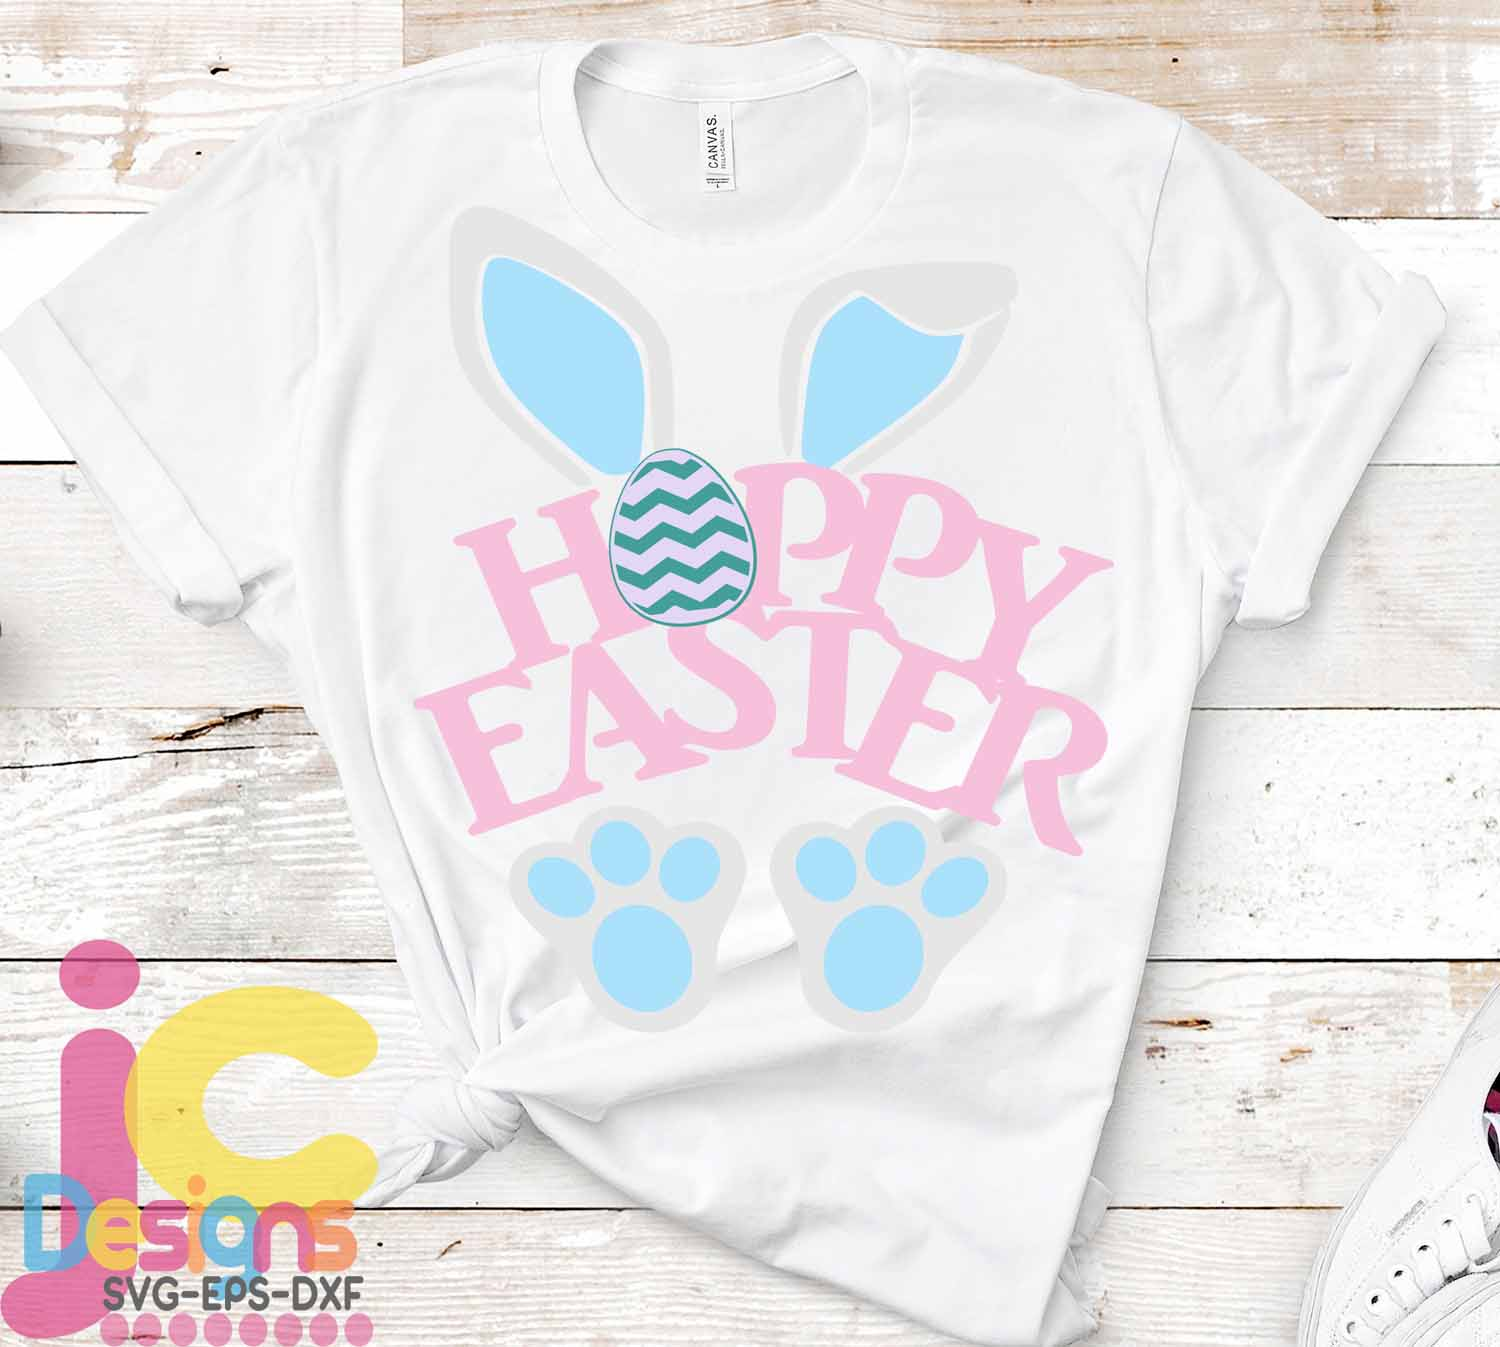 Easter SVG, Hoppy Easter SVG - Bunny ears Happy Easter svg example image 2